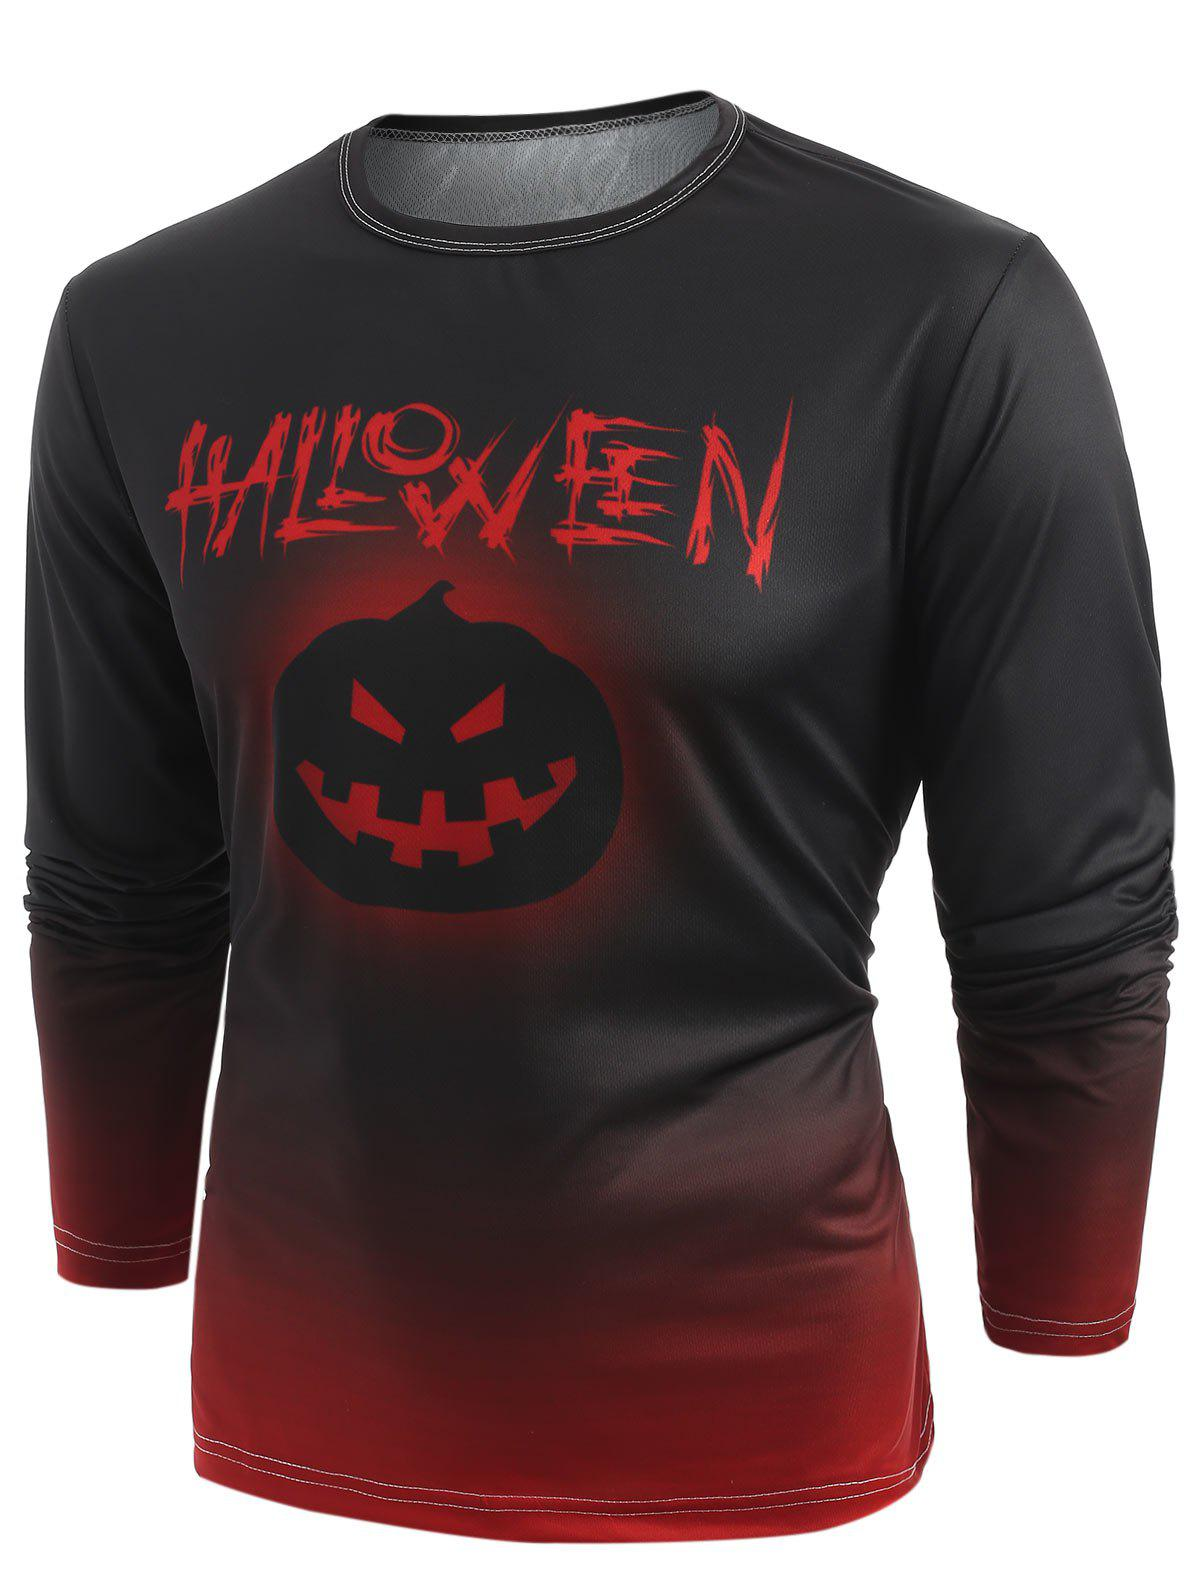 Buy Halloween Pumpkin Lantern Print Long Sleeve T-shirt